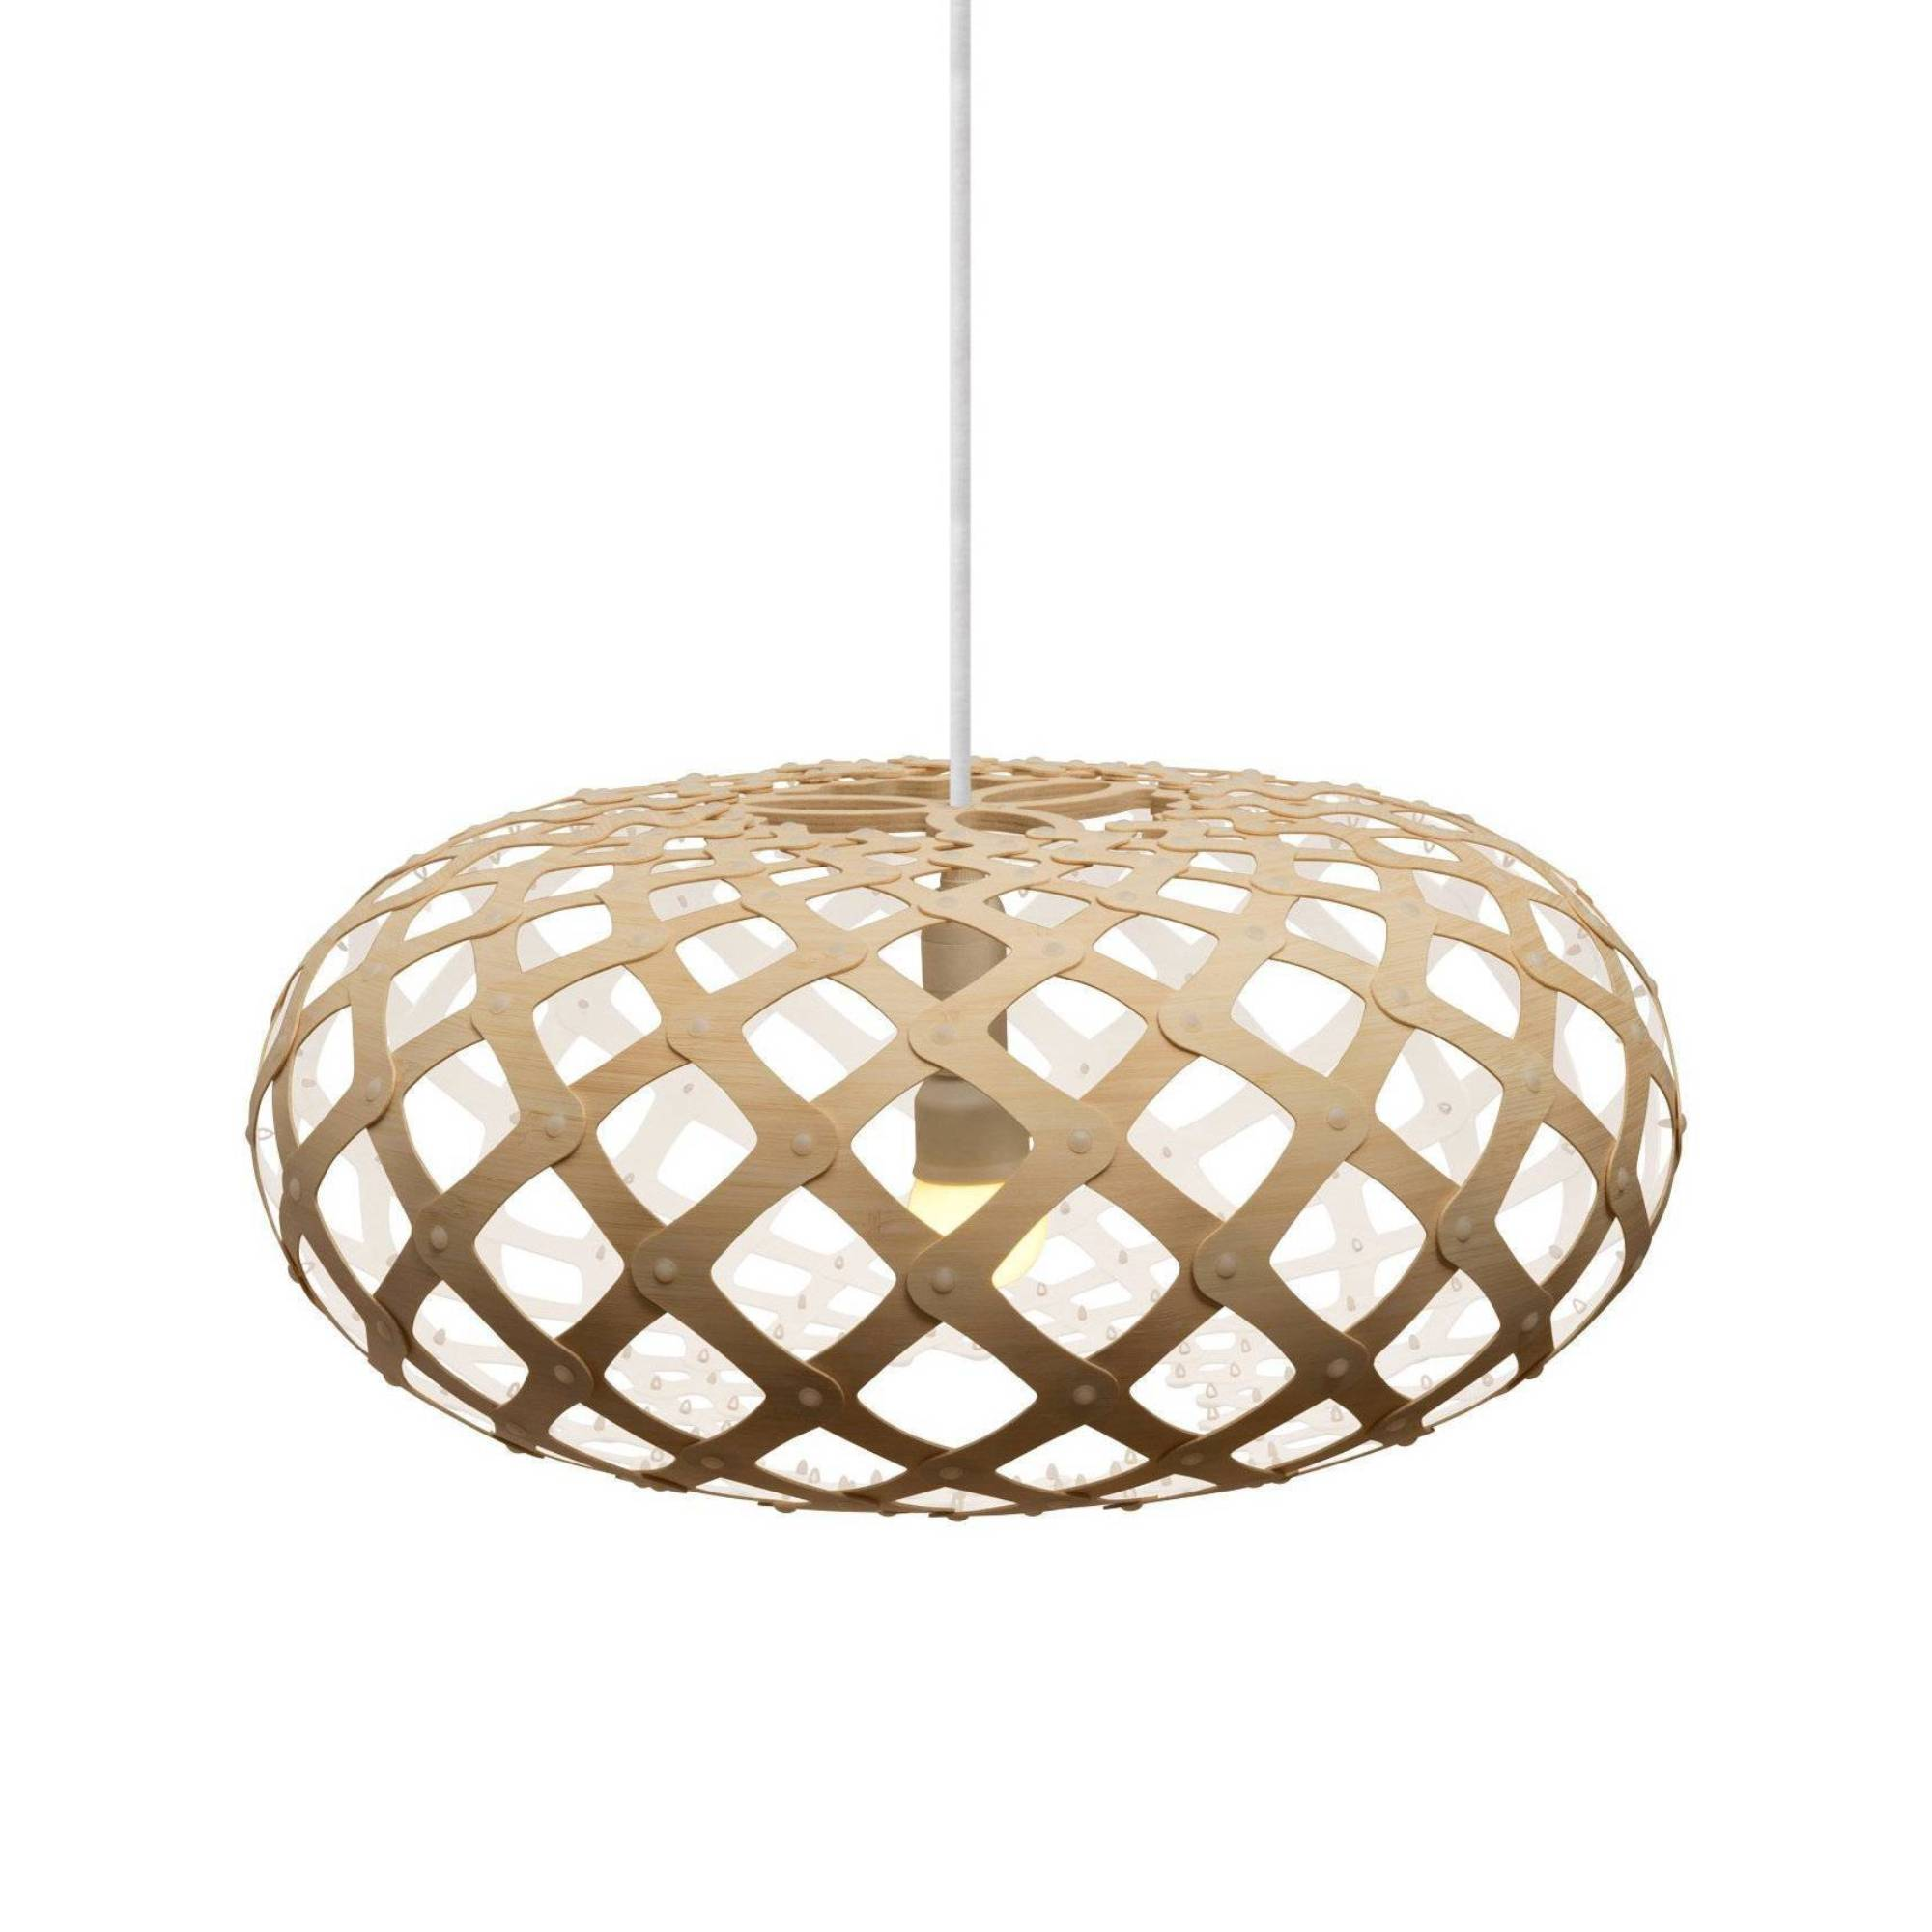 Kina Pendant Light: 600 + White